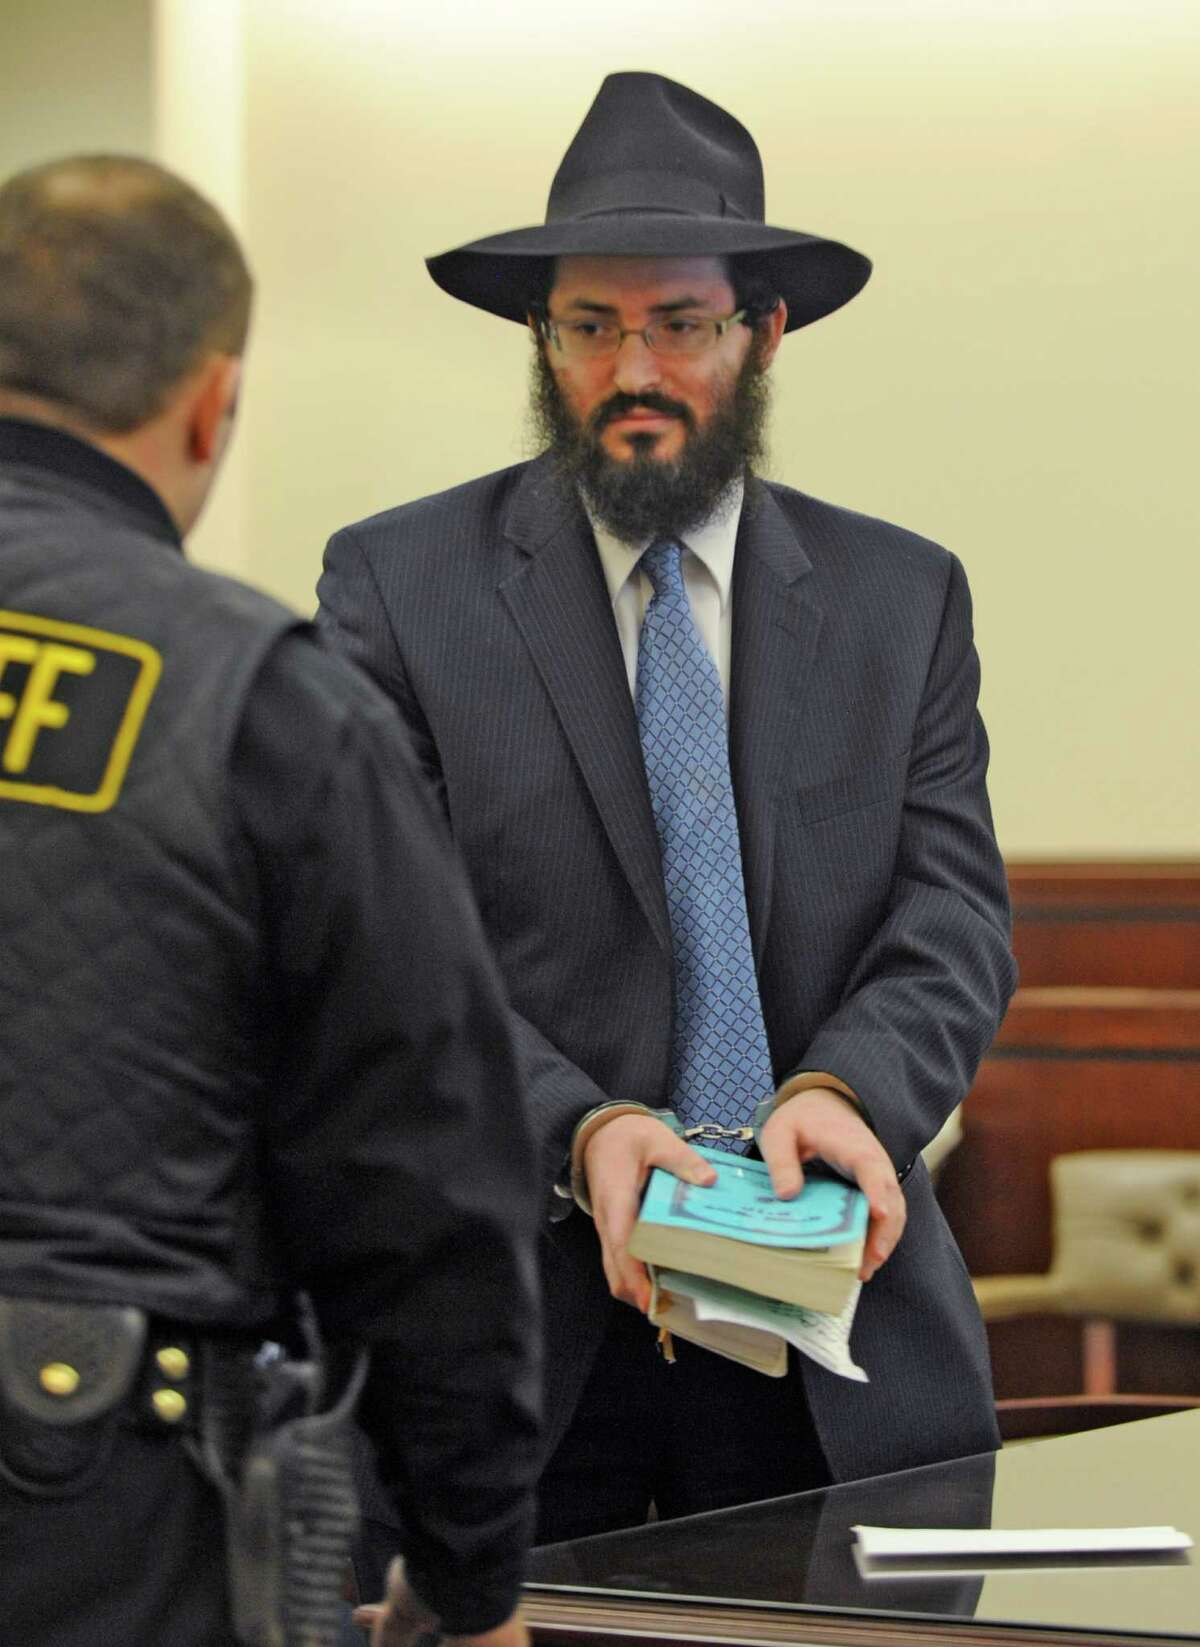 Yaakov Weiss holds his prayer books and wears handcuffs at the Albany County Judicial Center in Albany, New York, on March 8, 2010, after being sentenced to Albany County Jail for child endangerment (Skip Dickstein/Times Union archive)